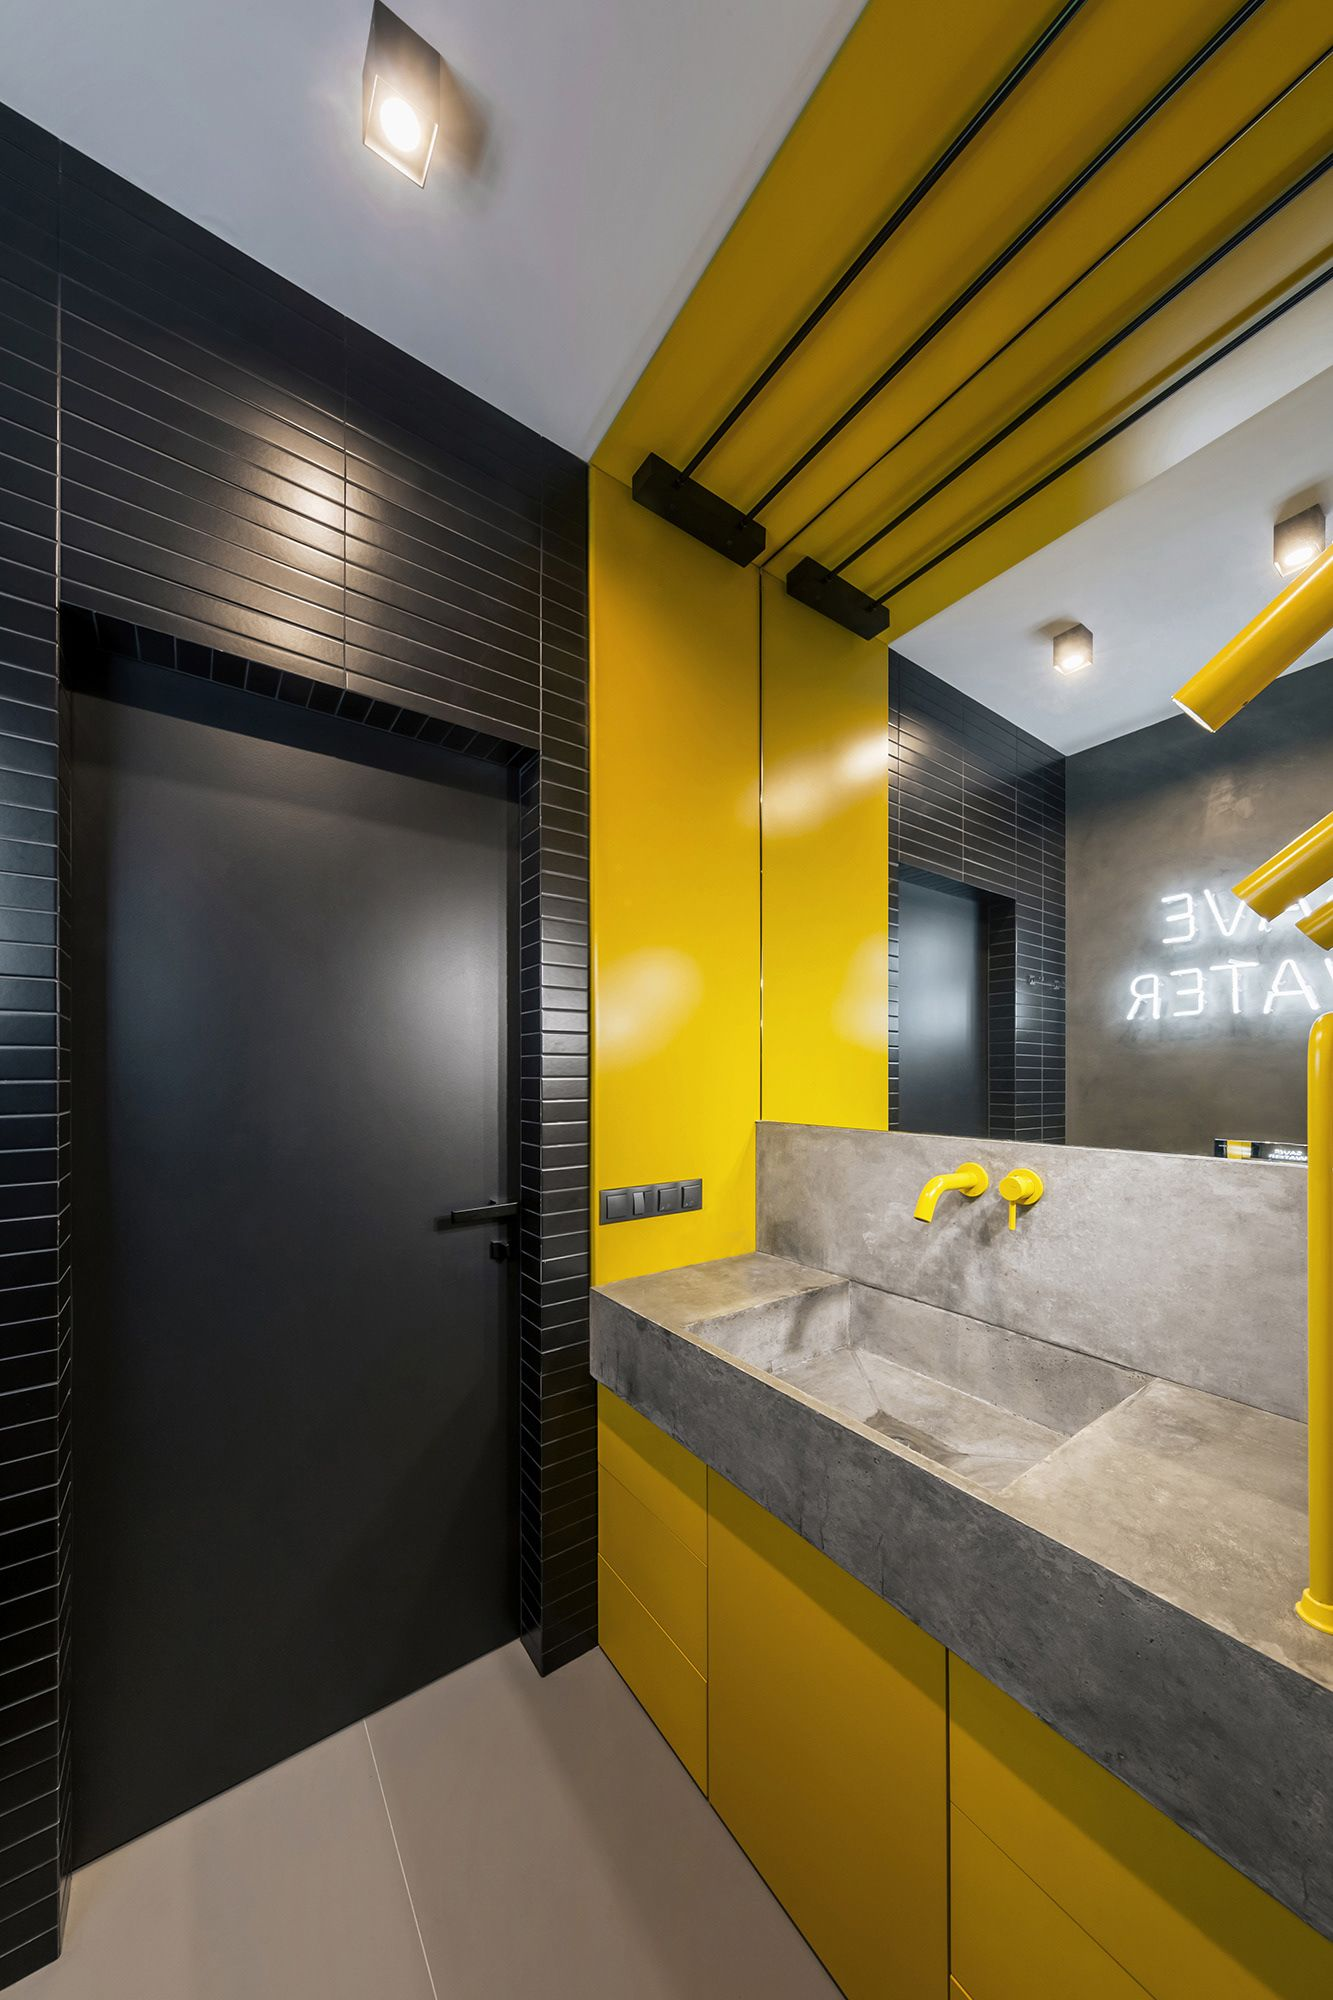 Art apartment on Behance in 2020 | Commercial bathroom ...